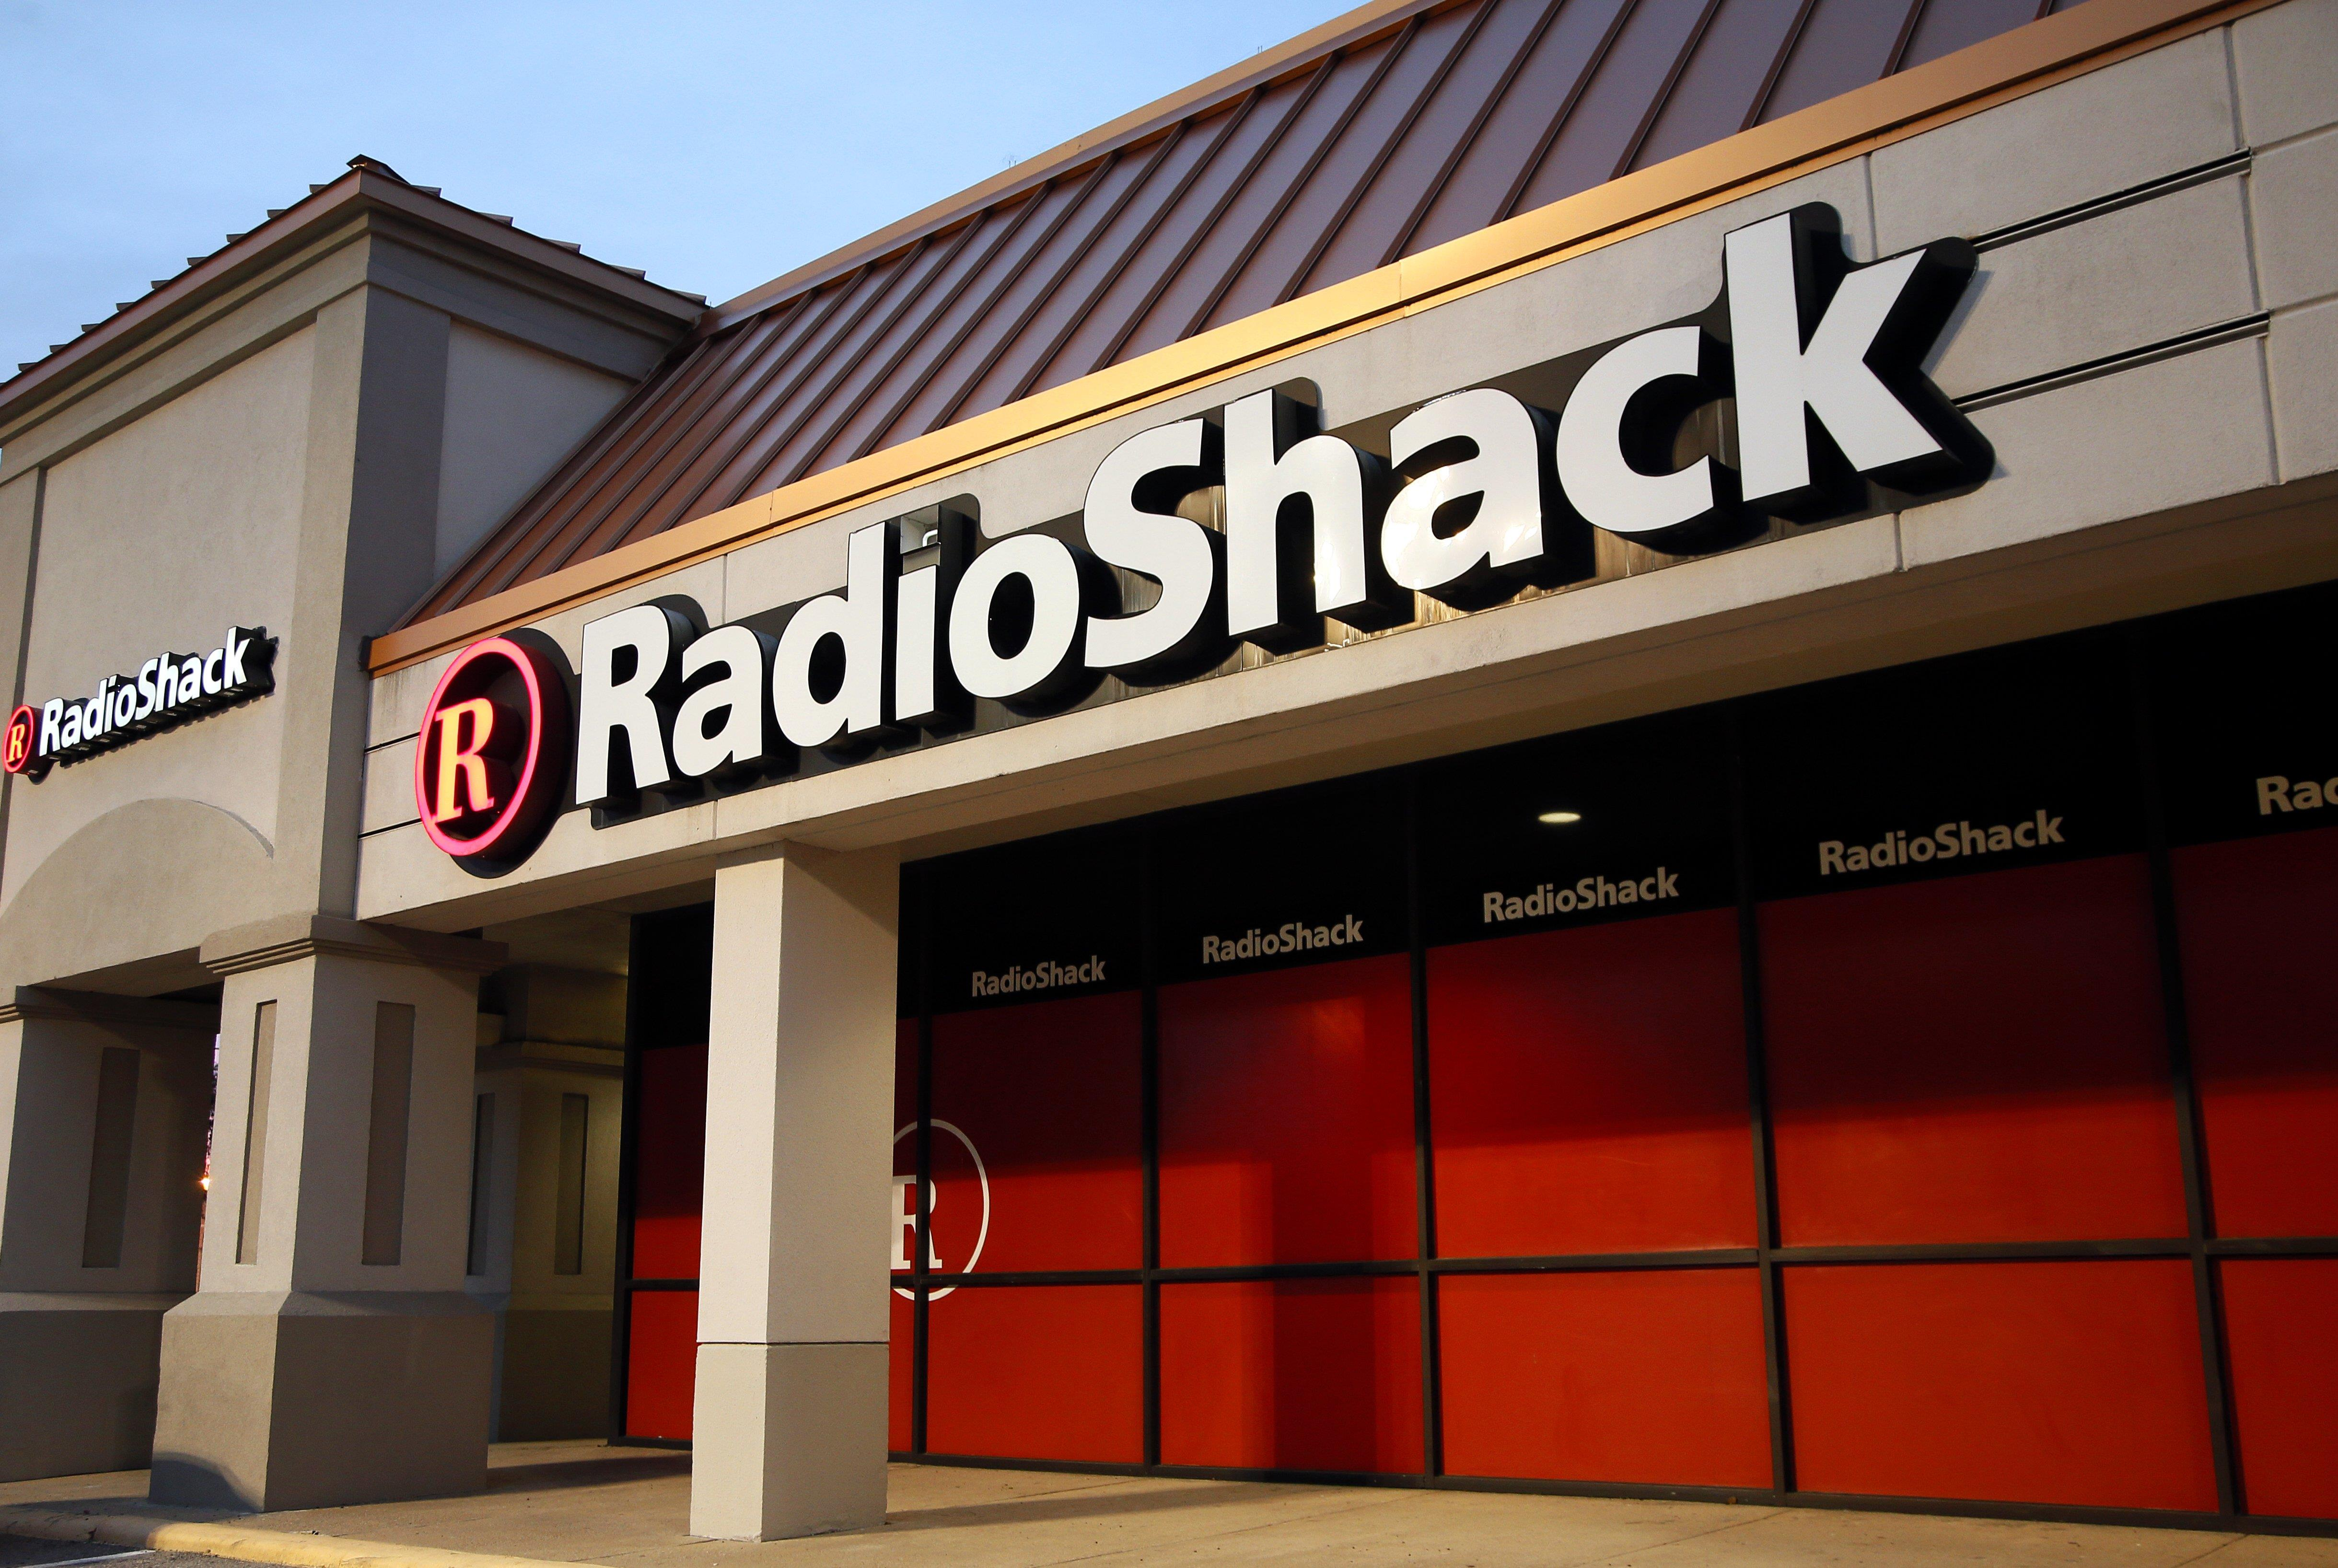 radioshack files for chapter 11 bankruptcy after years of